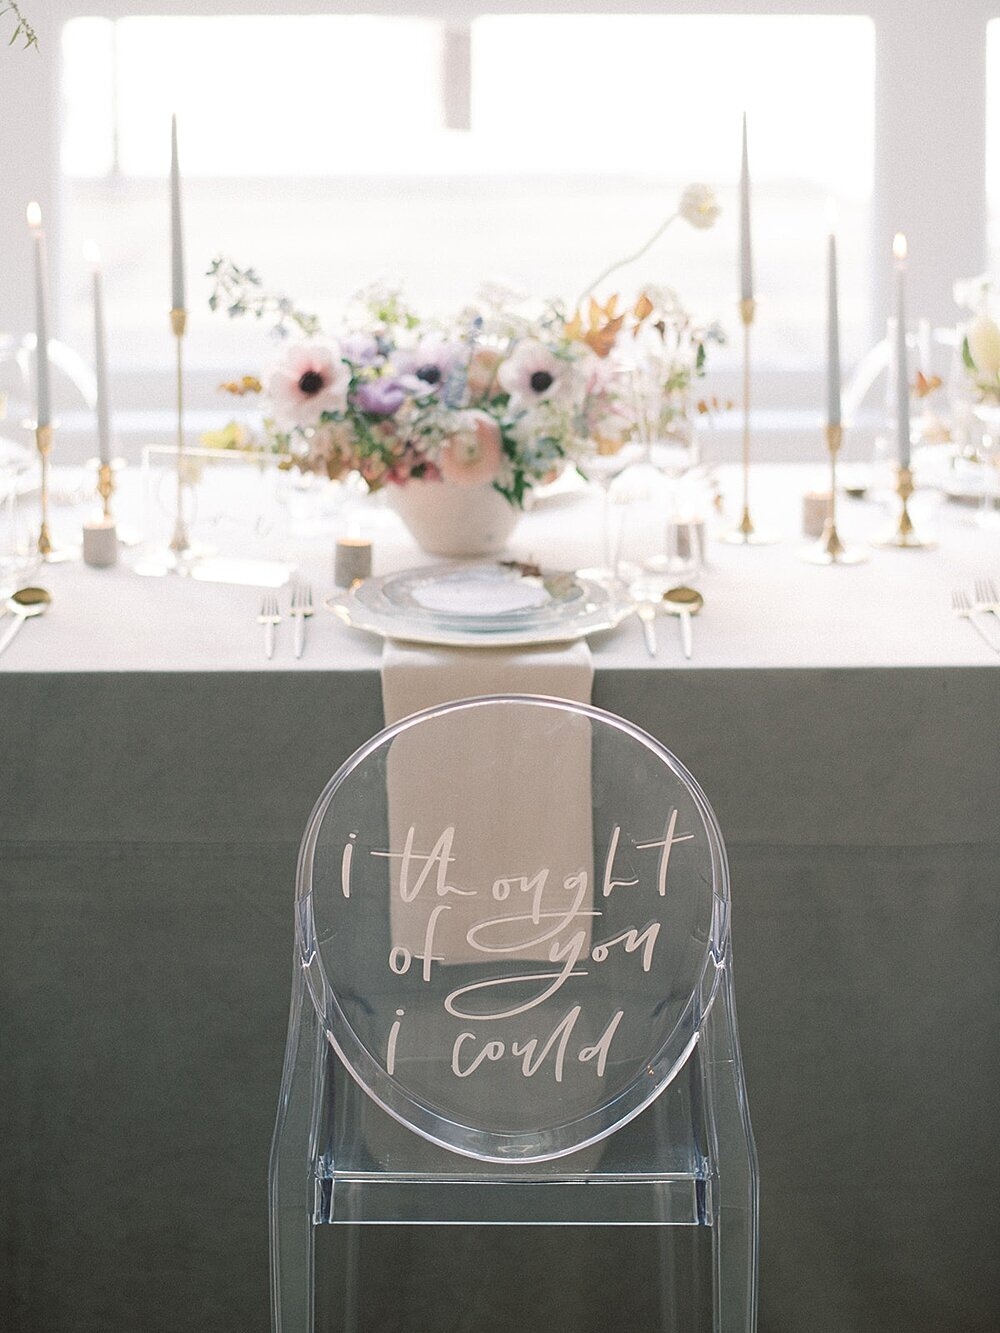 Modern-love-event-leigh-and-mitchell-acrylic-chairs-wedding-quote-ideas